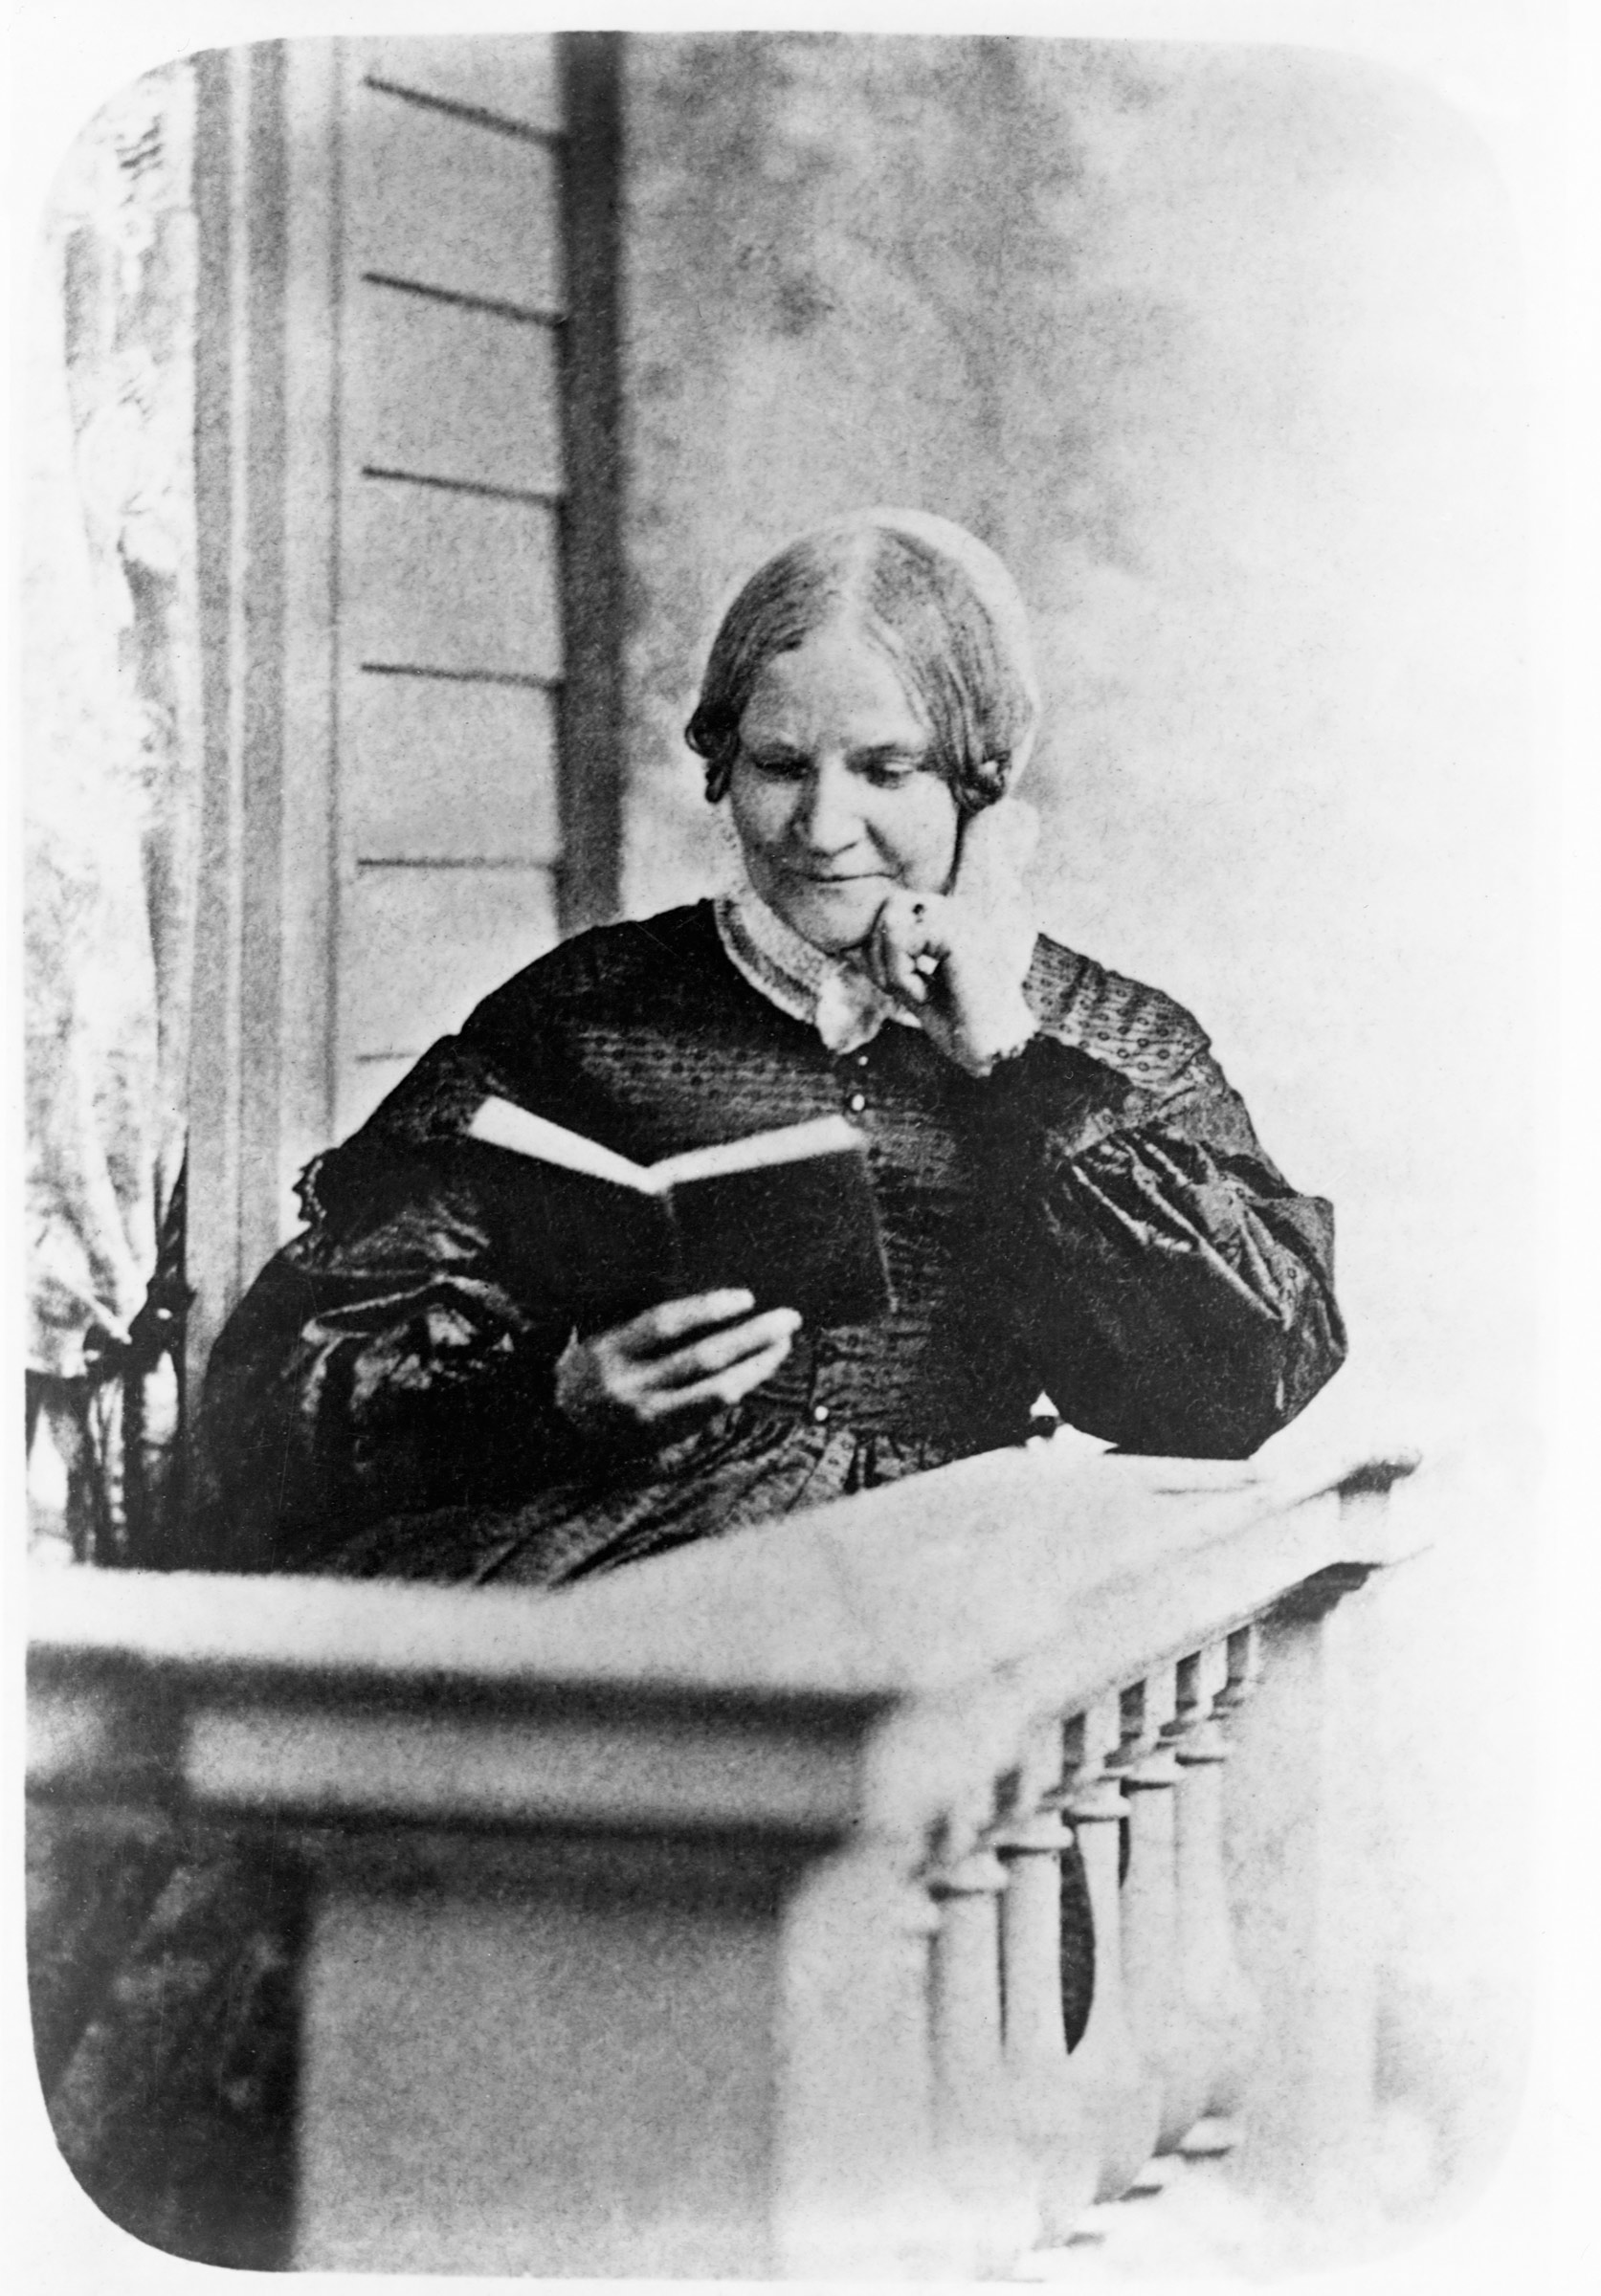 Lydia Maria Child (1802-1880) reads a book on a front porch. Child wrote and edited books promoting the suffragist and abolitionist causes.